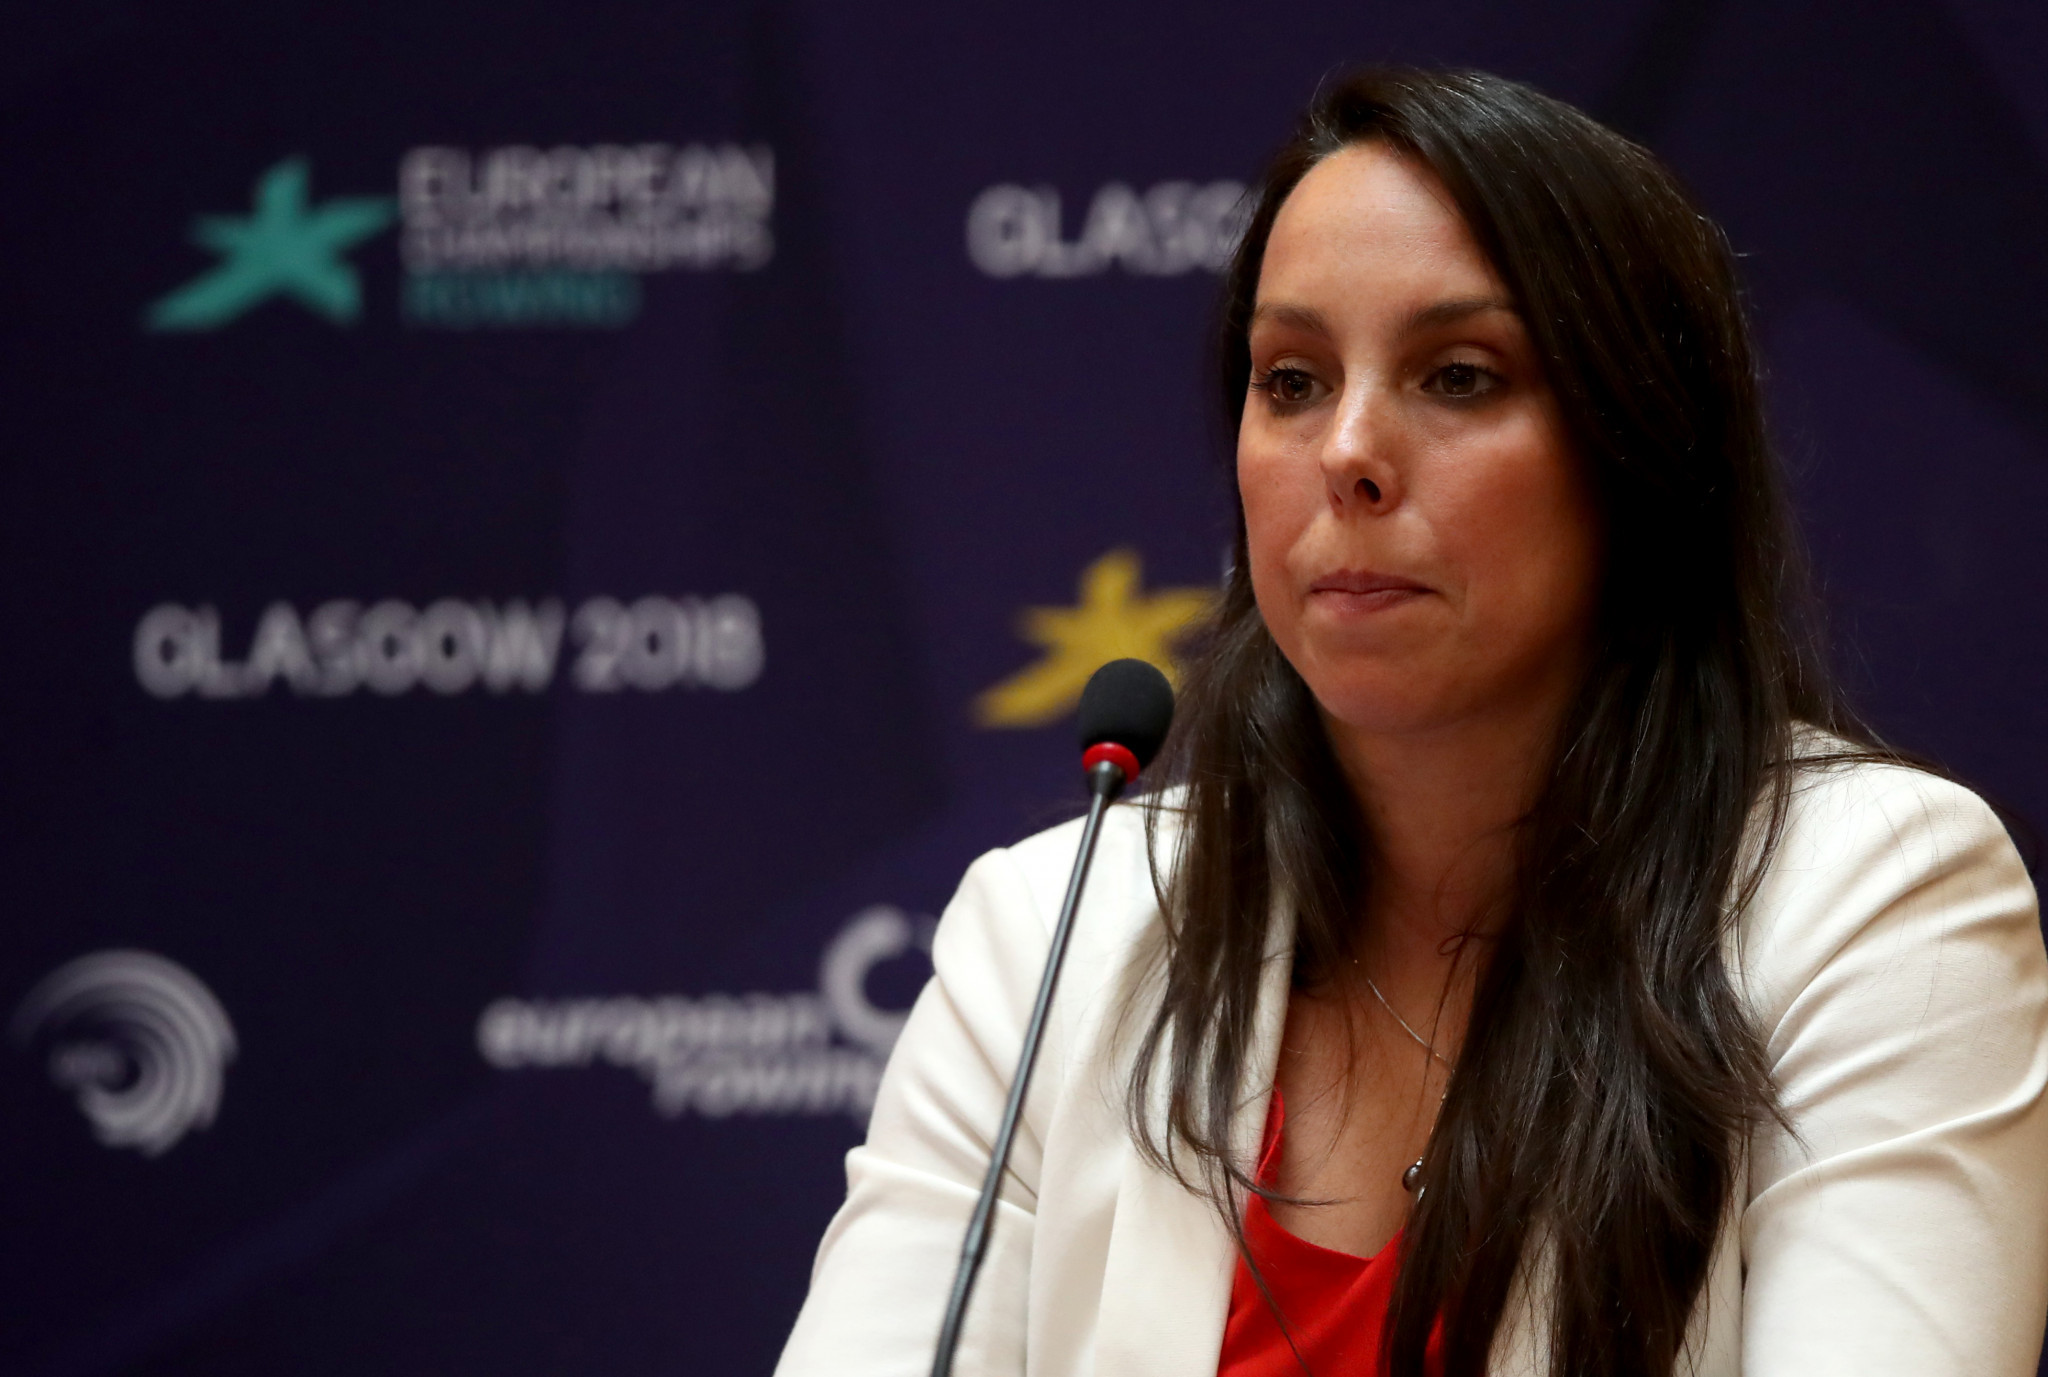 Olympic medallist Beth Tweddle has called on all gymnasts to speak out if they feel they have been mistreated ©Getty Images